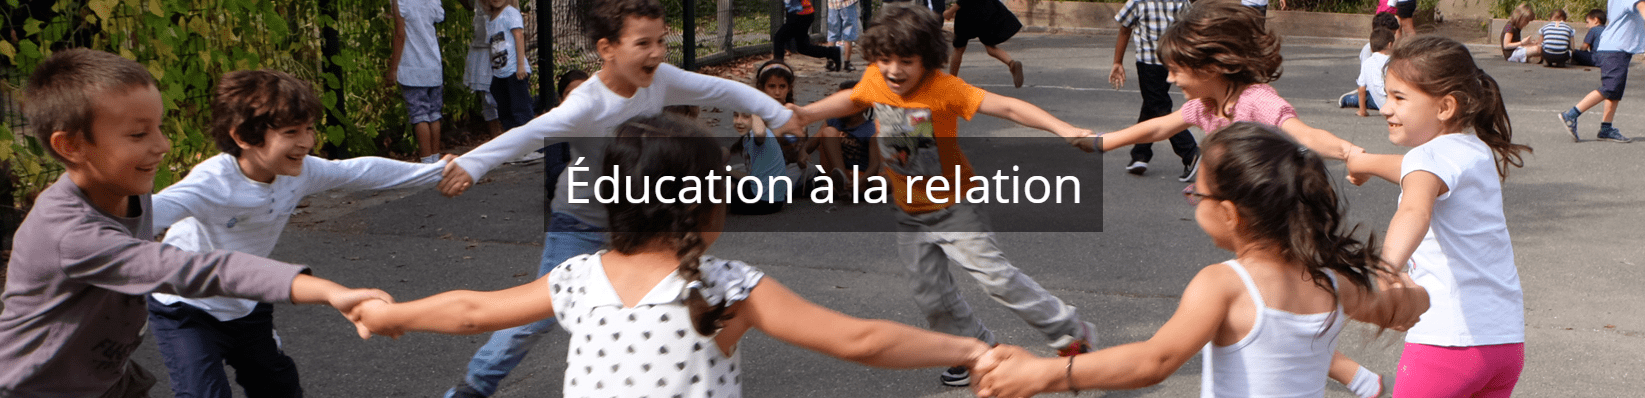 Capture education a la relation